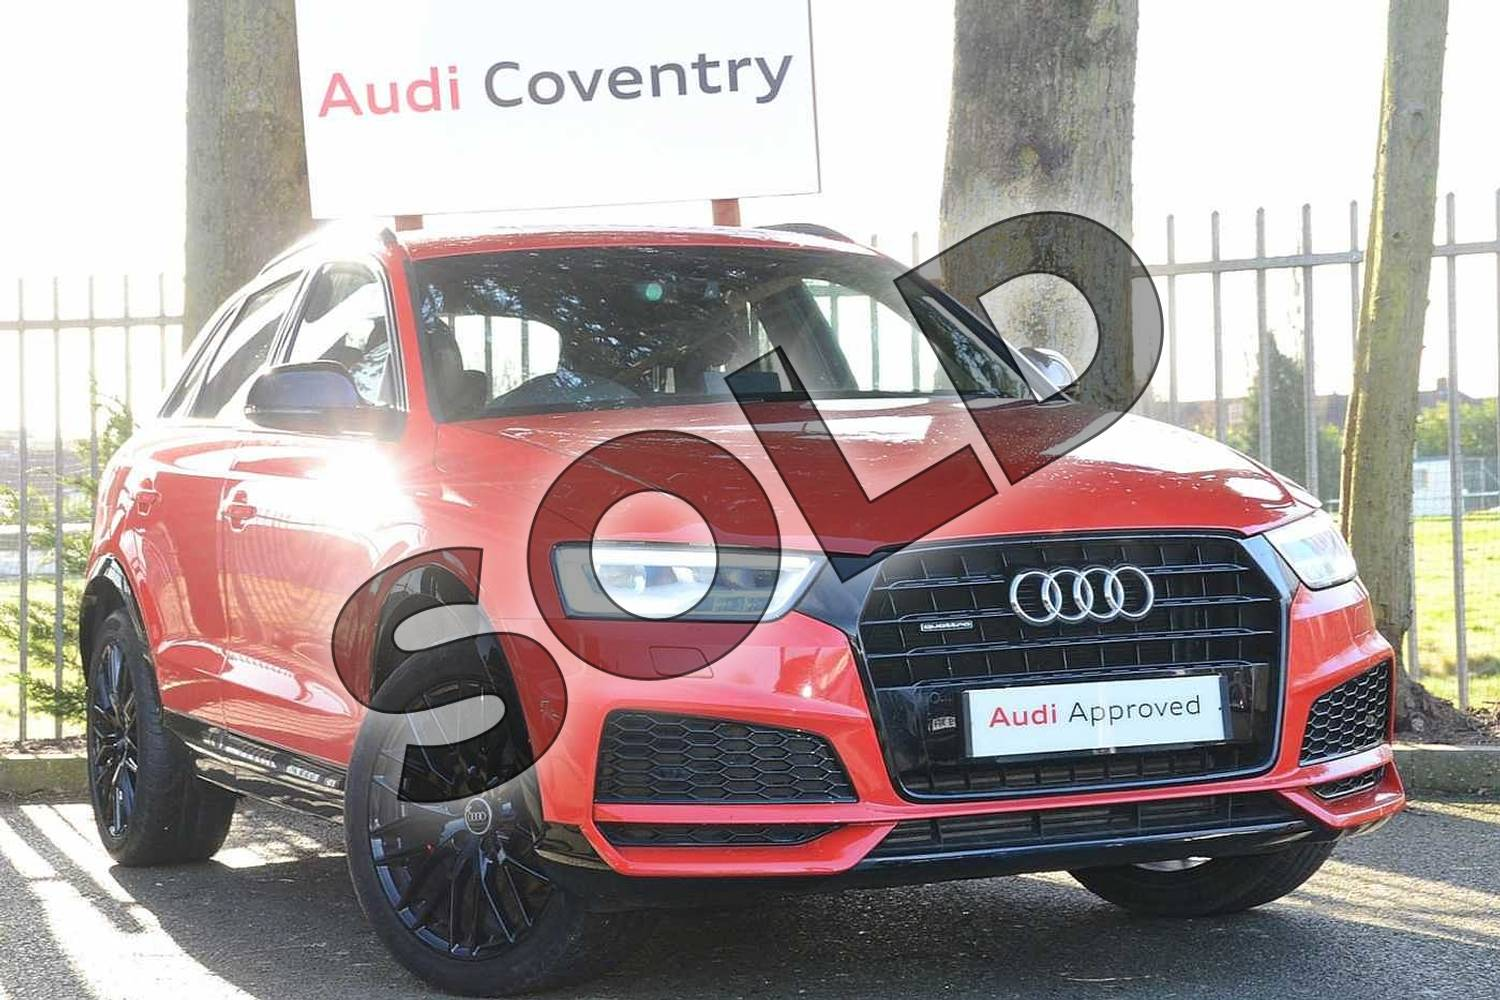 2017 Audi Q3 Estate Special Editions 2.0T FSI Quattro S Line Edition 5dr S Tronic in Misano Red Pearlescent at Coventry Audi